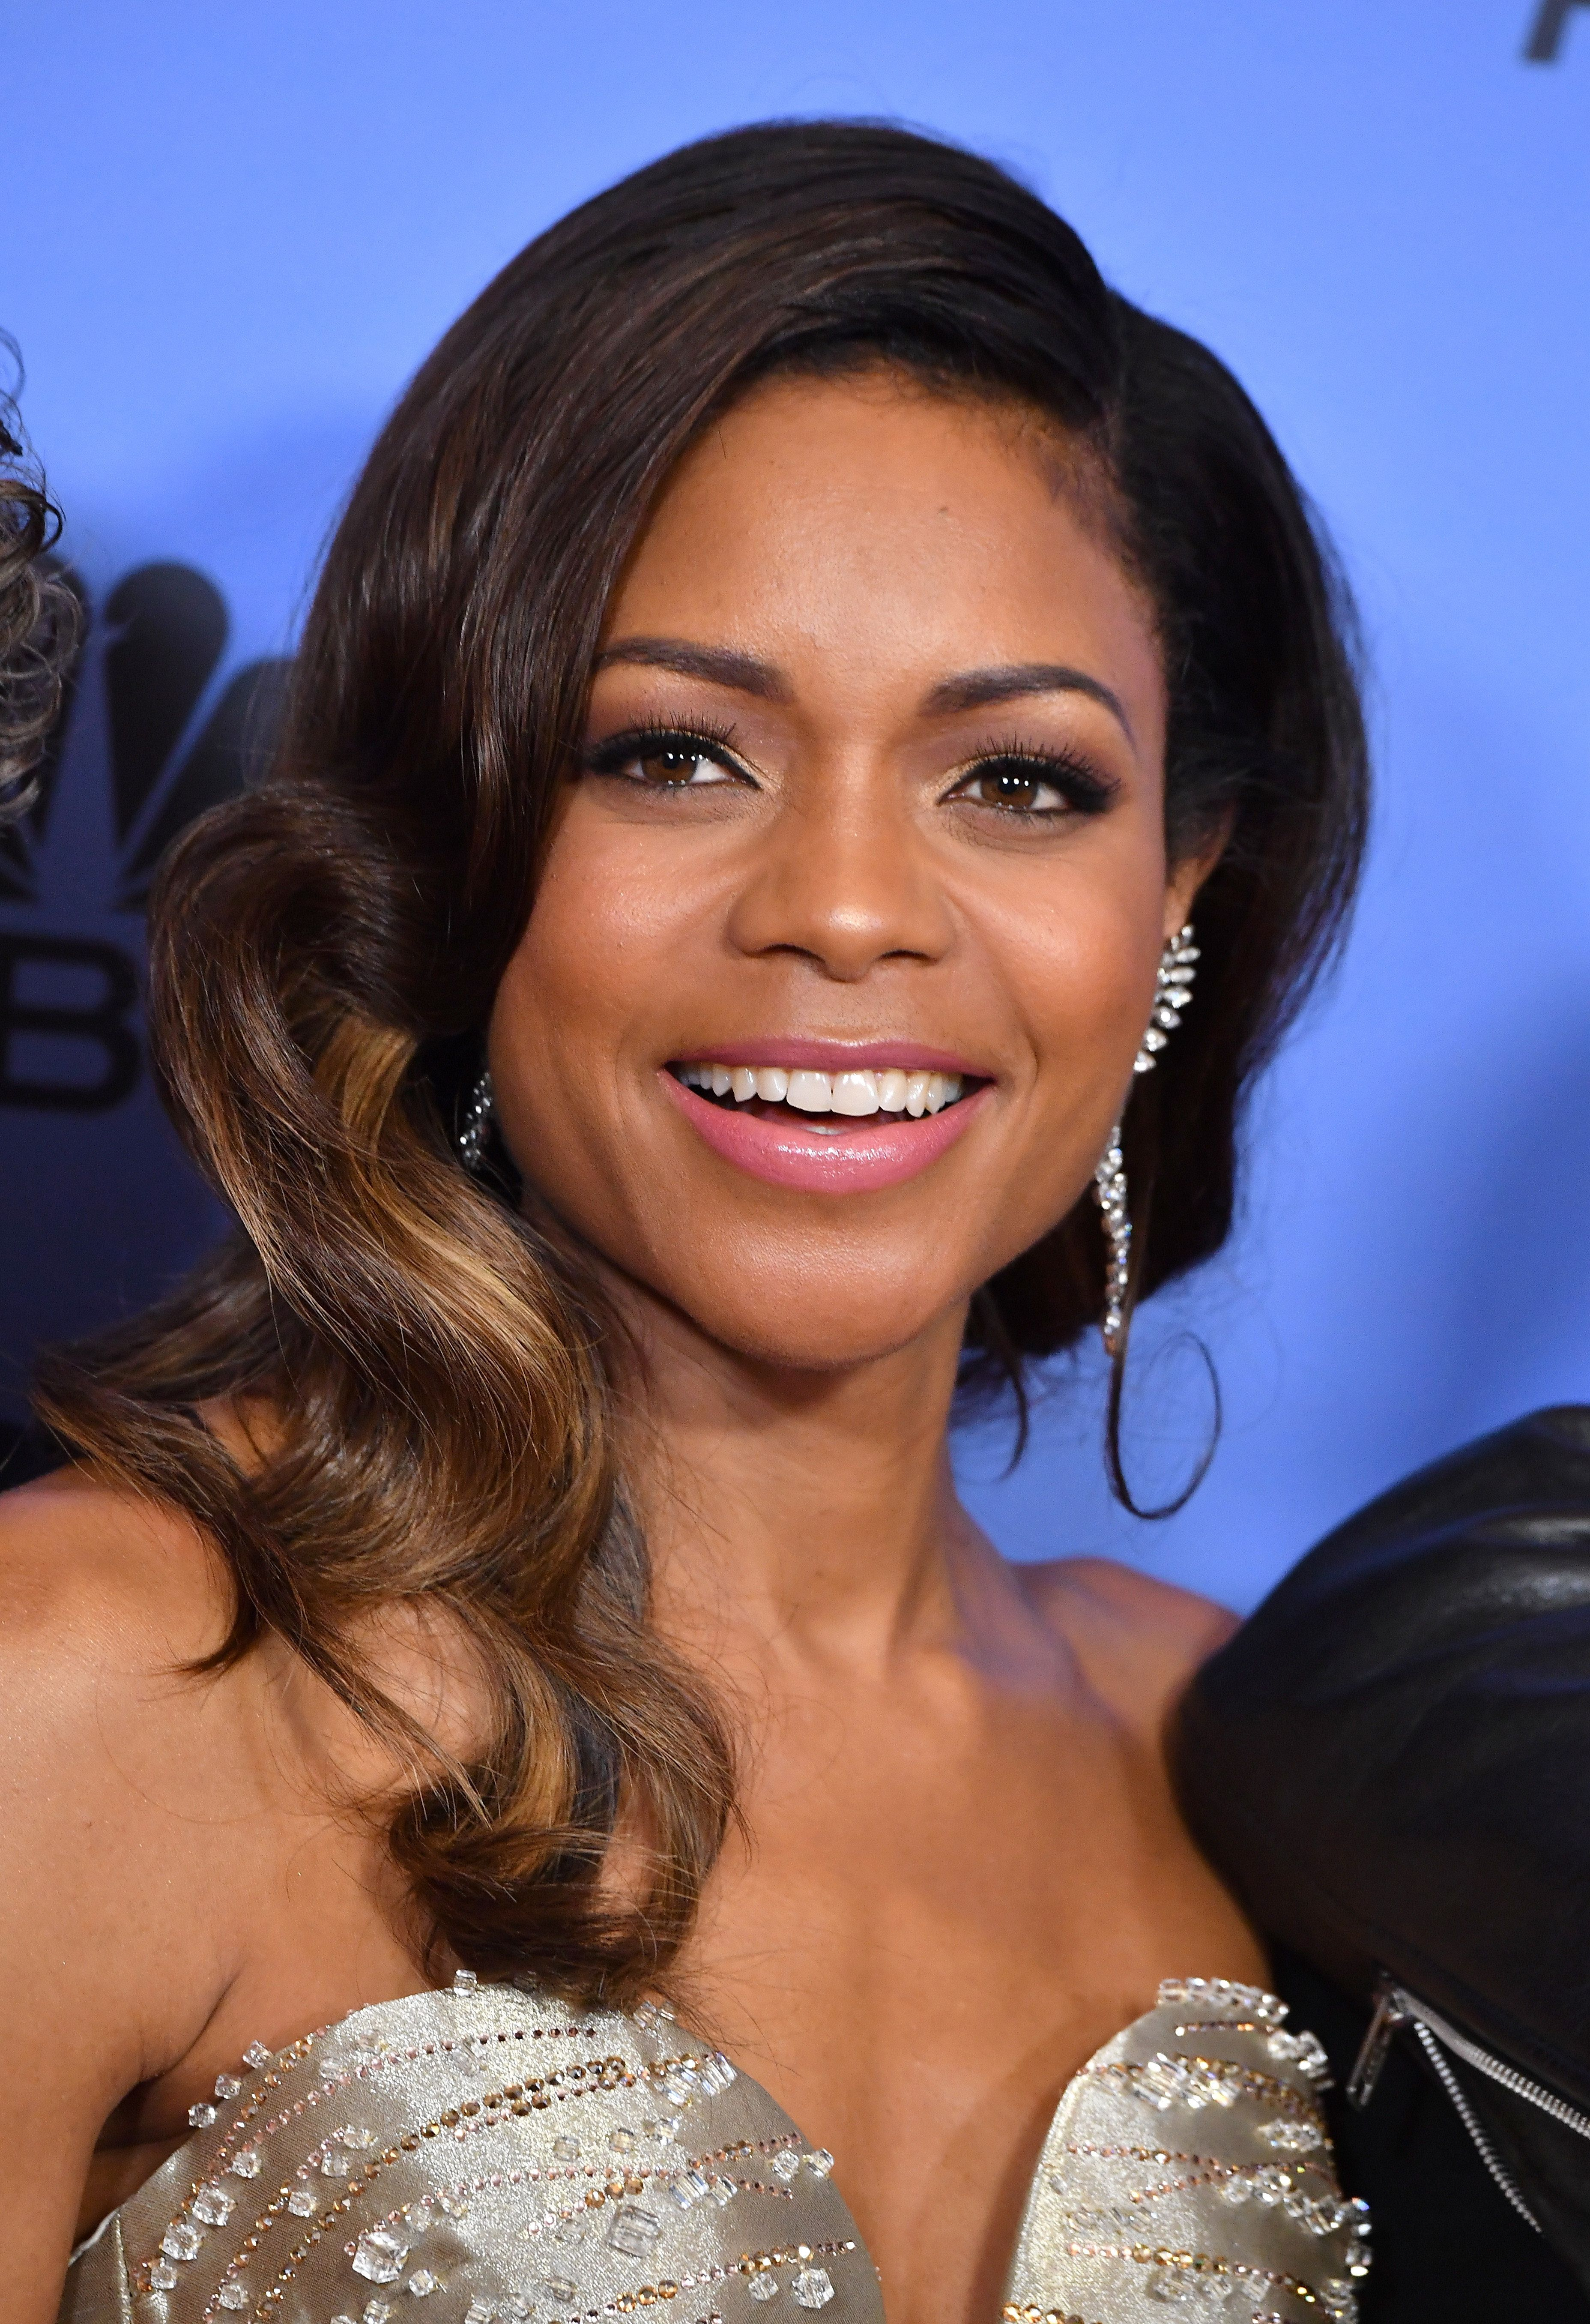 BEVERLY HILLS, CA - JANUARY 08:  Actress Naomie Harris poses in the press room during the 74th Annual Golden Globe Awards at The Beverly Hilton Hotel on January 8, 2017 in Beverly Hills, California.  (Photo by Steve Granitz/WireImage)